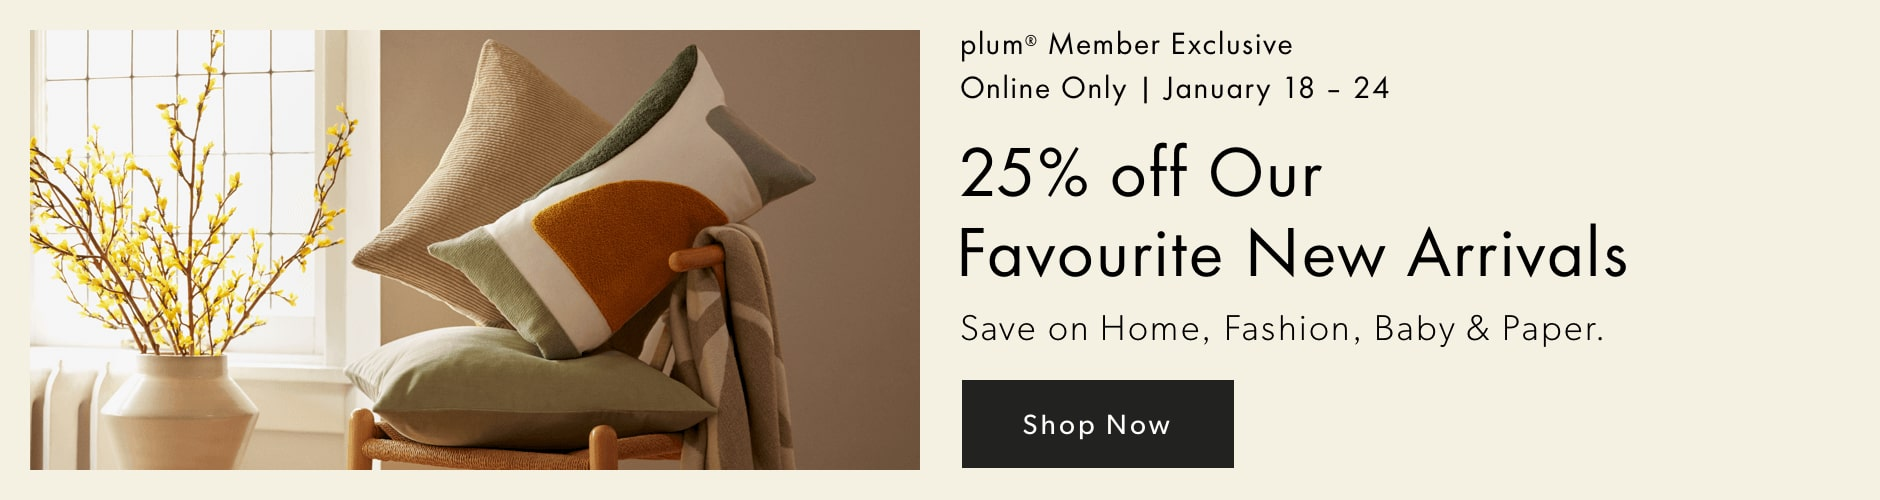 plum member exclusive - 25% off our favourite new arrivals. Save on Home, Fashion, Baby, and Paper. Offer ends January 24, 2021